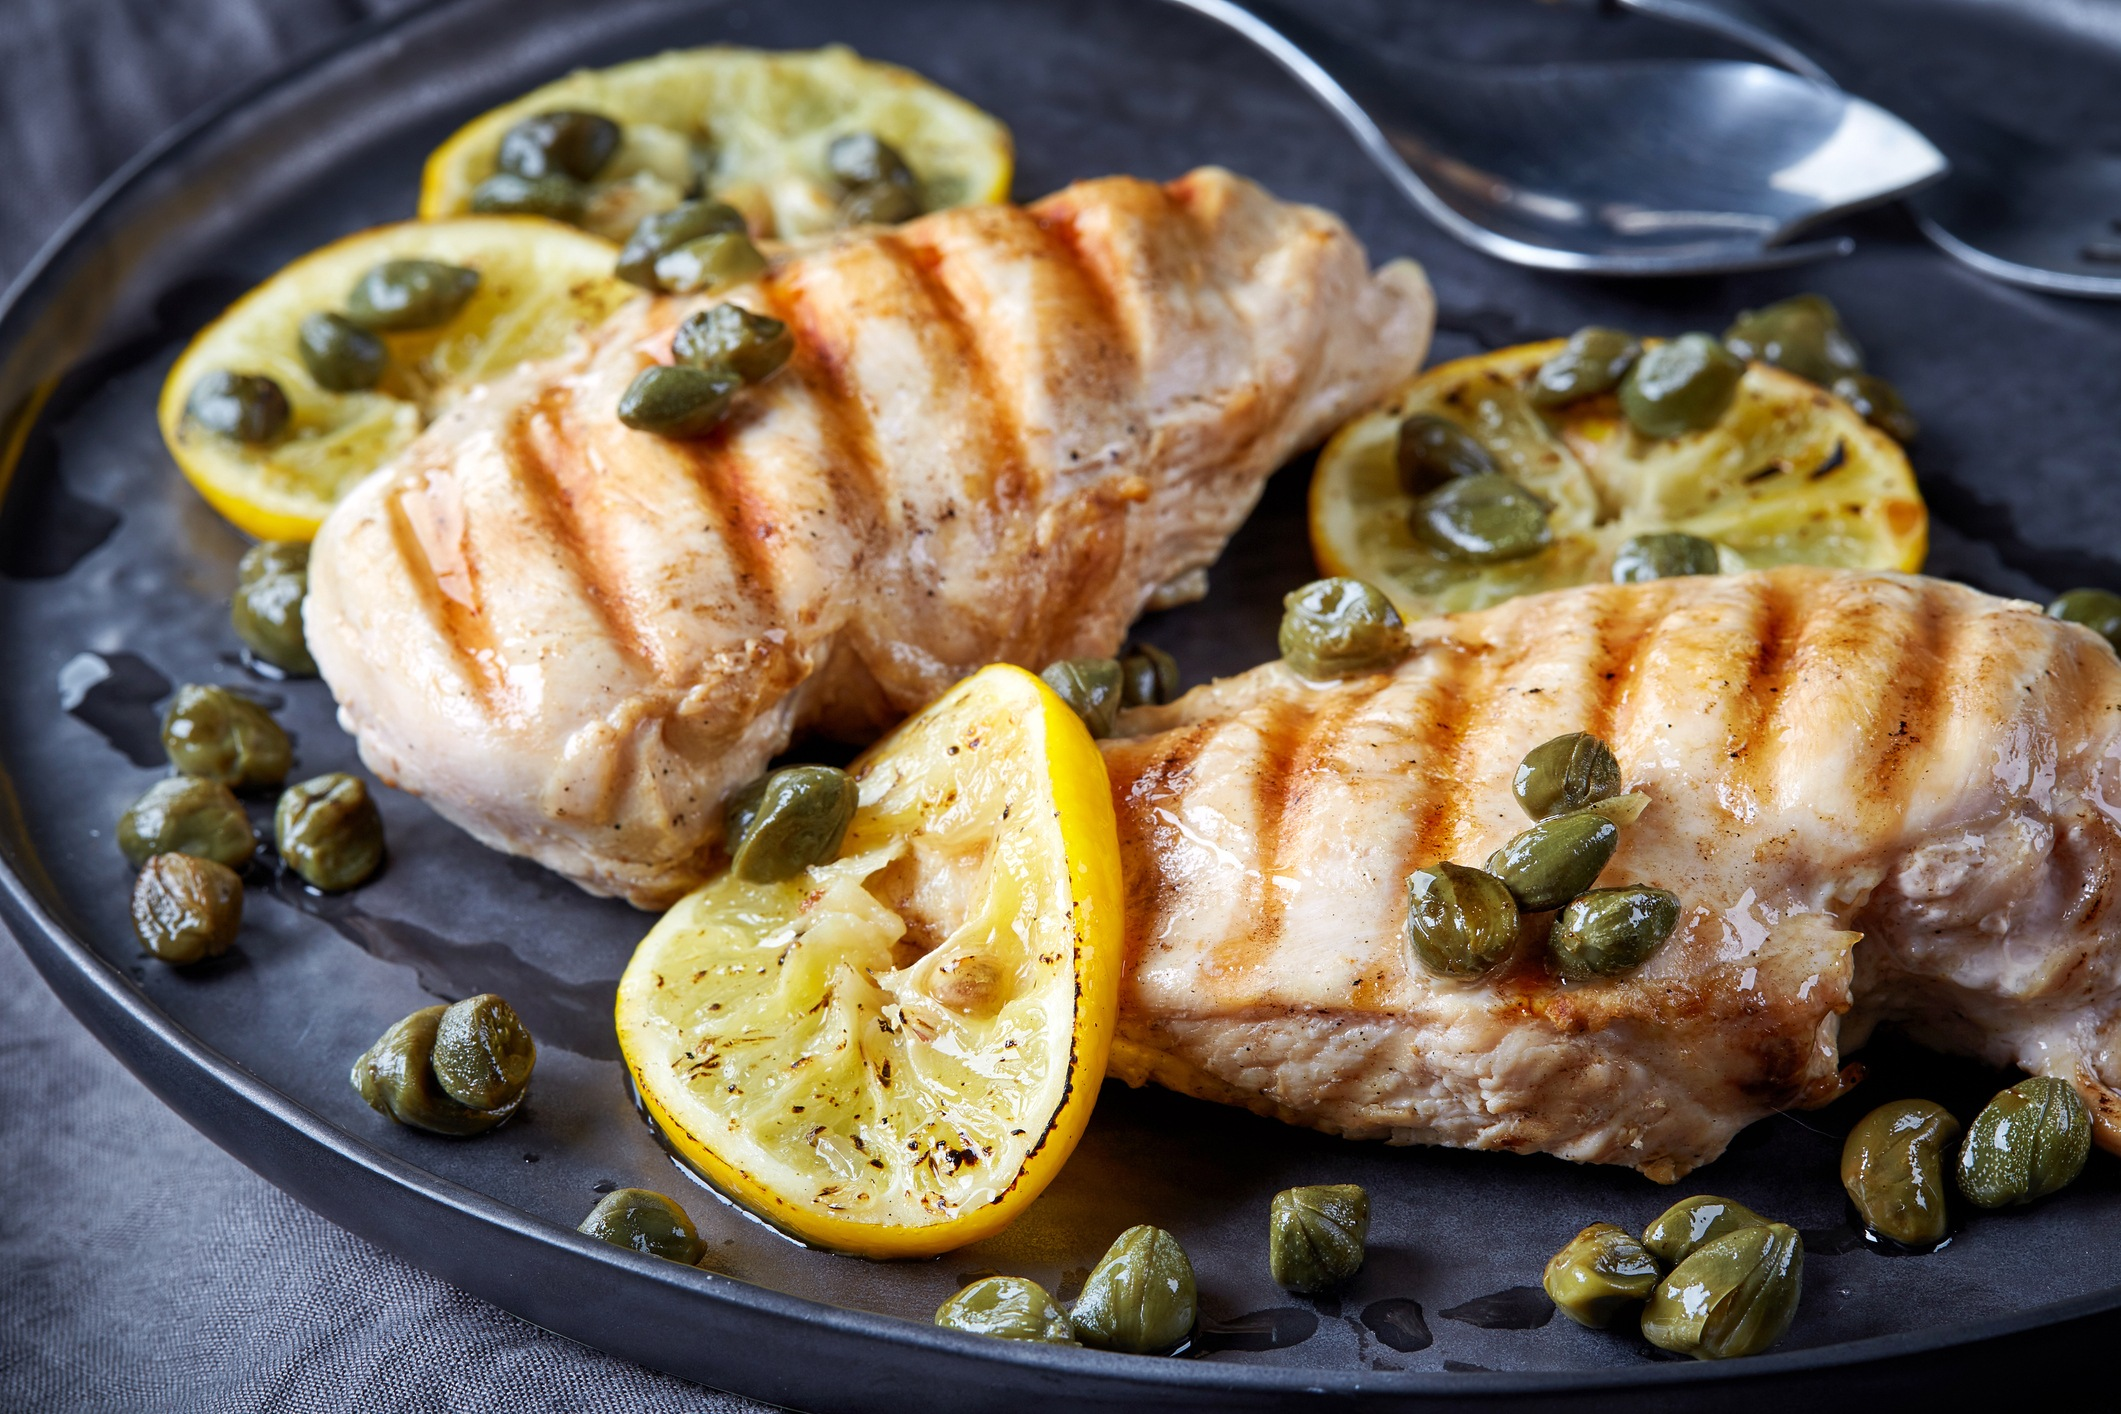 Chicken with lemon and capers